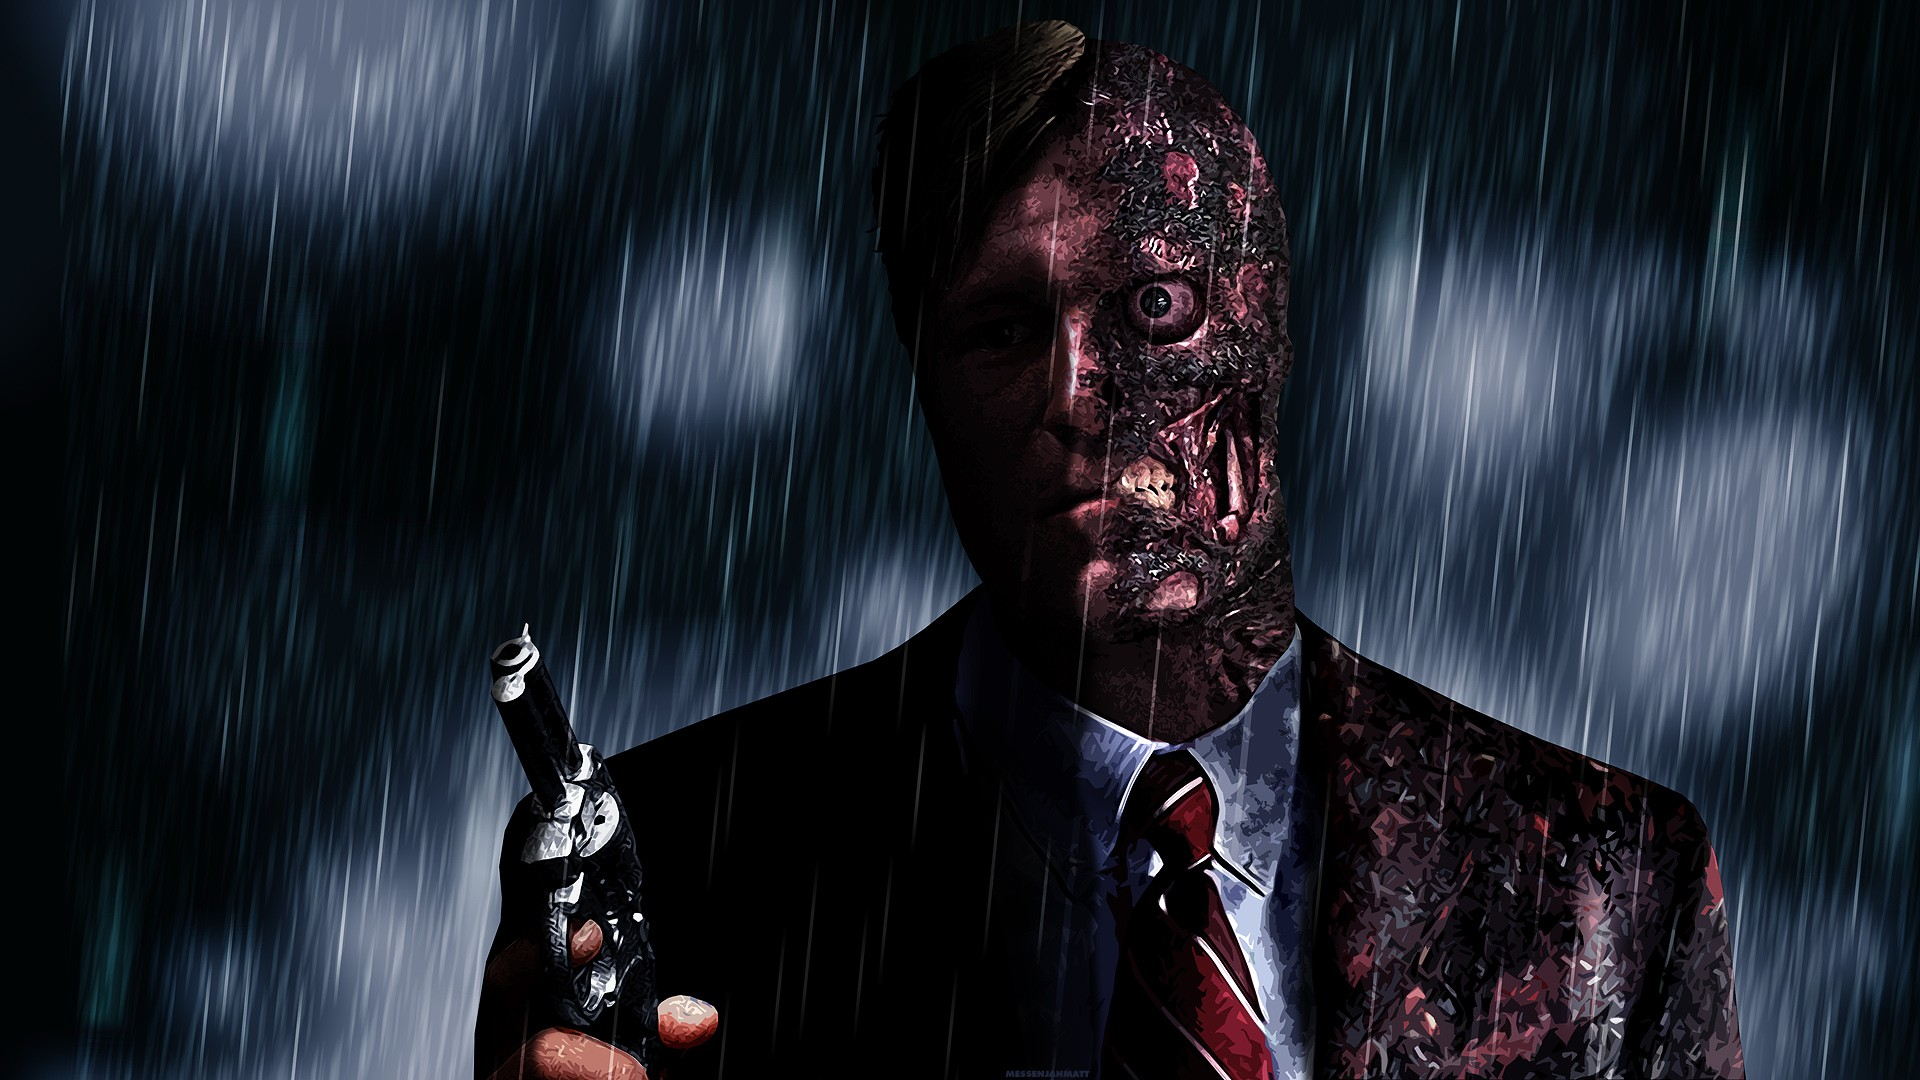 General 1920x1080 Two-Face video games Batman video game art